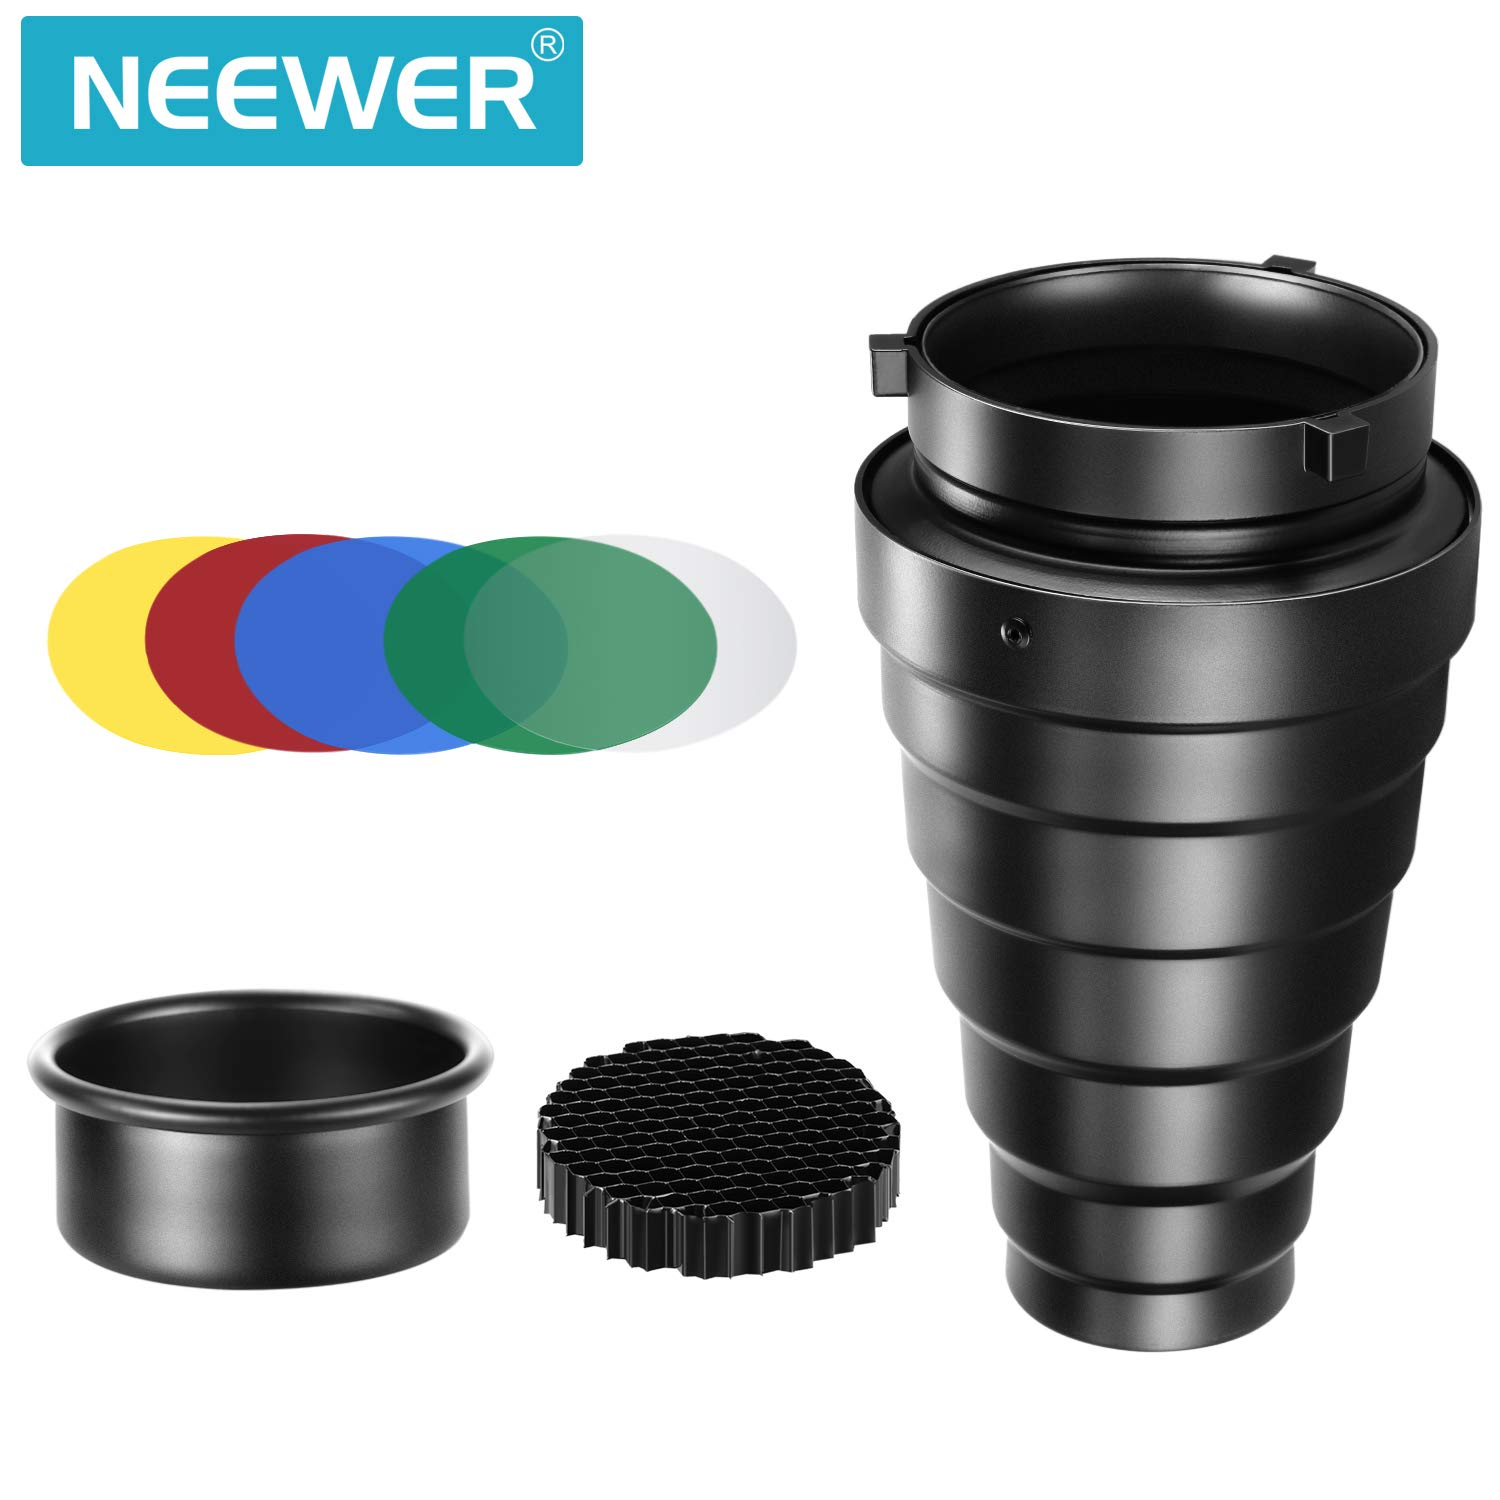 Neewer Medium Aluminium Alloy Conical Snoot Kit with Honeycomb Grid and 5 Pieces Color Gel Filters for Bowens Mount Studio Strobe Monolight Photography Flash Light 10092533